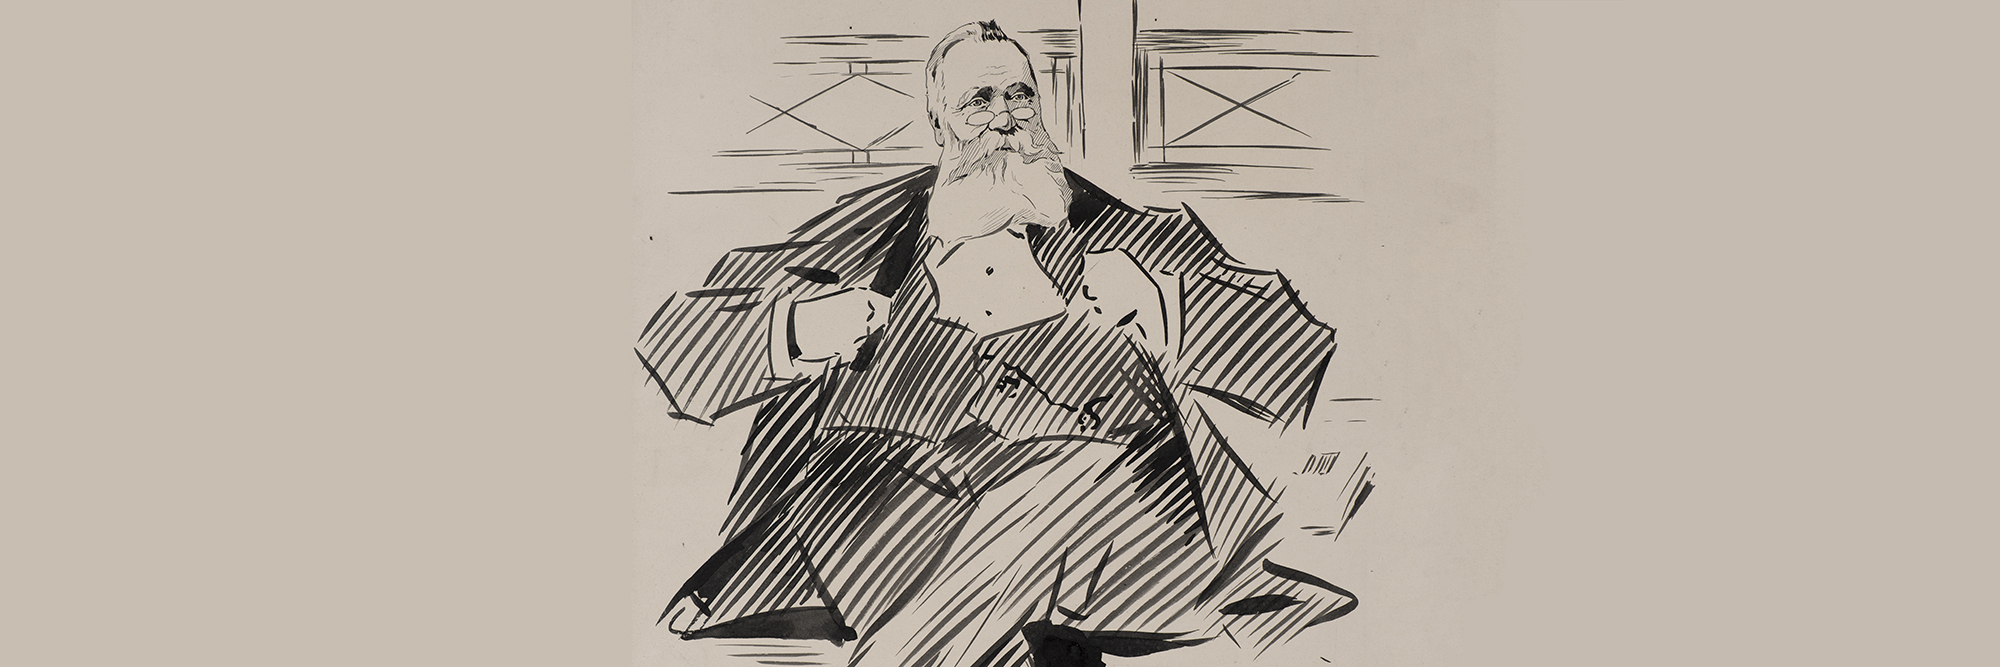 L.J. Jones, Sketch of Mr. J.H. Abbott (early 20th century), brush and ink. Gift of the Estate of Mr. J.H. Abbott, 1932. Collection, Bendigo Art Gallery.